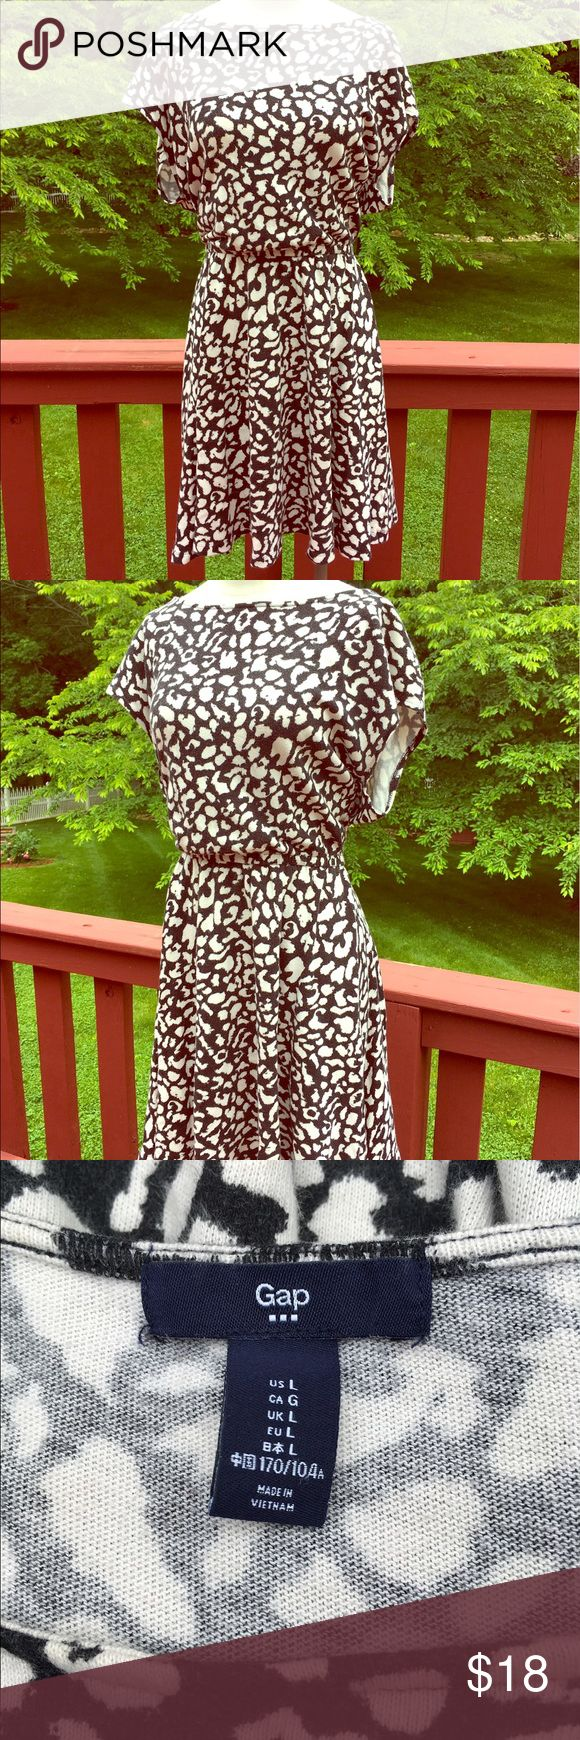 ⭐️Black and White Cheetah Print Gap Dress⭐️ ⭐️Black and White Cheetah Print Gap Dress⭐️ I LOVE this dress!! ❤️ Perfect for summer! Easy to wear, looks great! Slip it on, add some sandals and you're set! Great condition. Gap brand. Next day shipping. All sales are final. GAP Dresses Midi